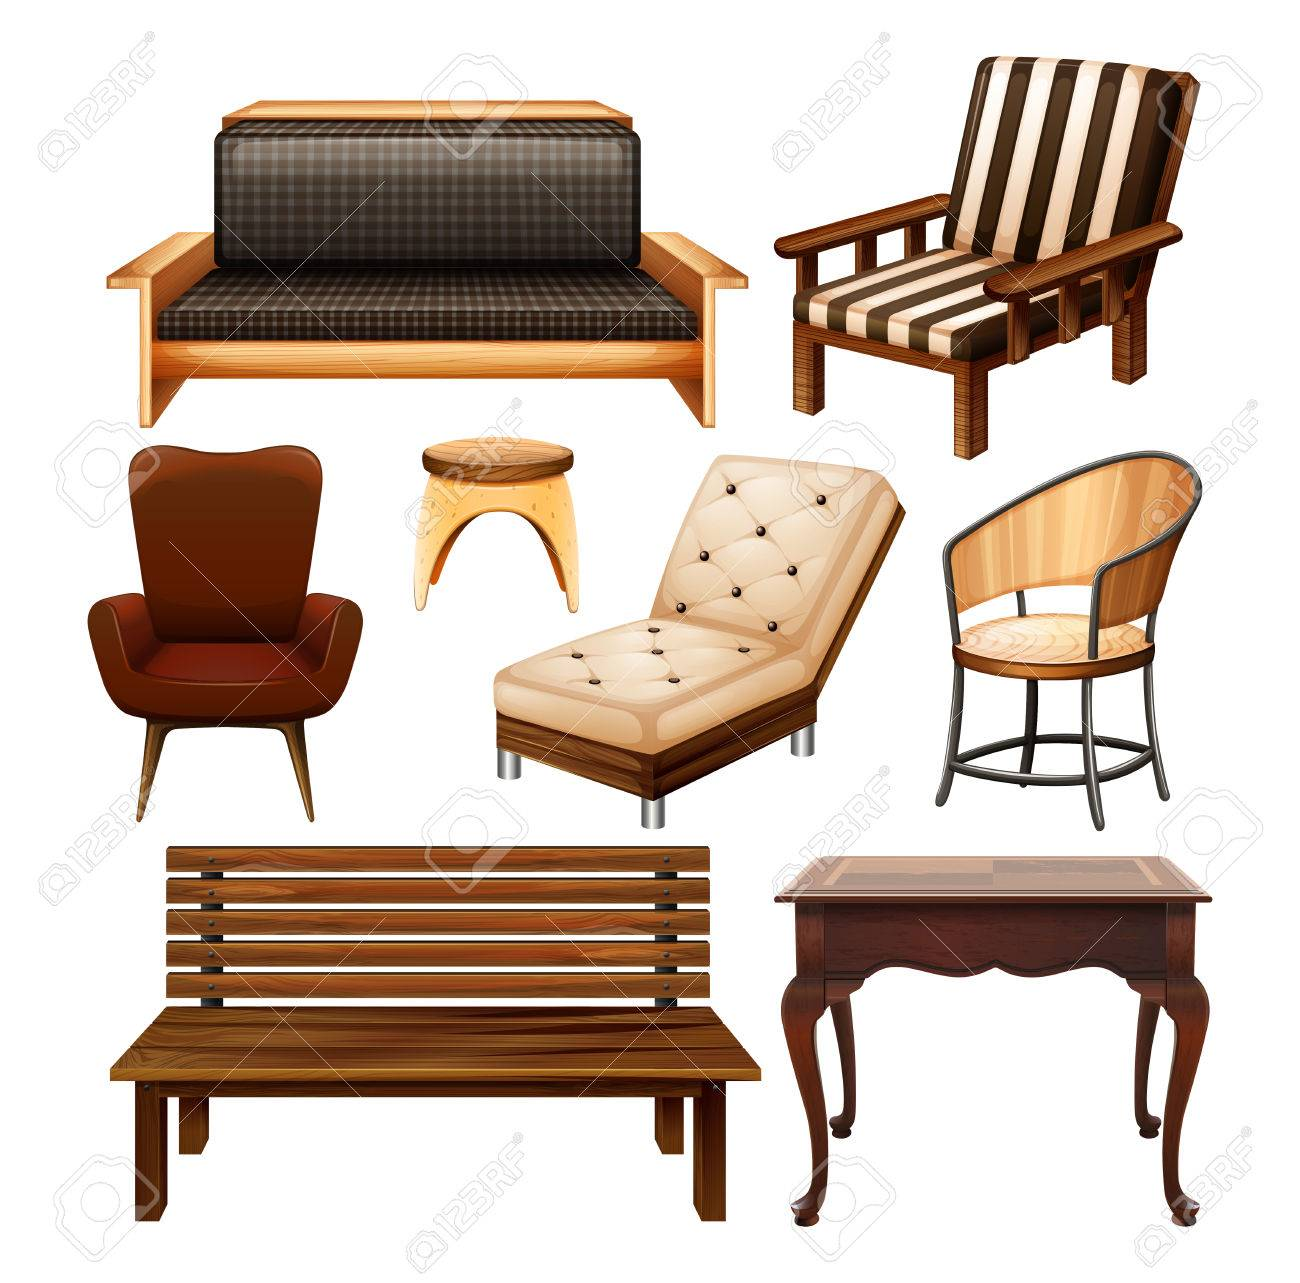 Different Kind Of Chairs And Table Royalty Free Cliparts, Vectors ...